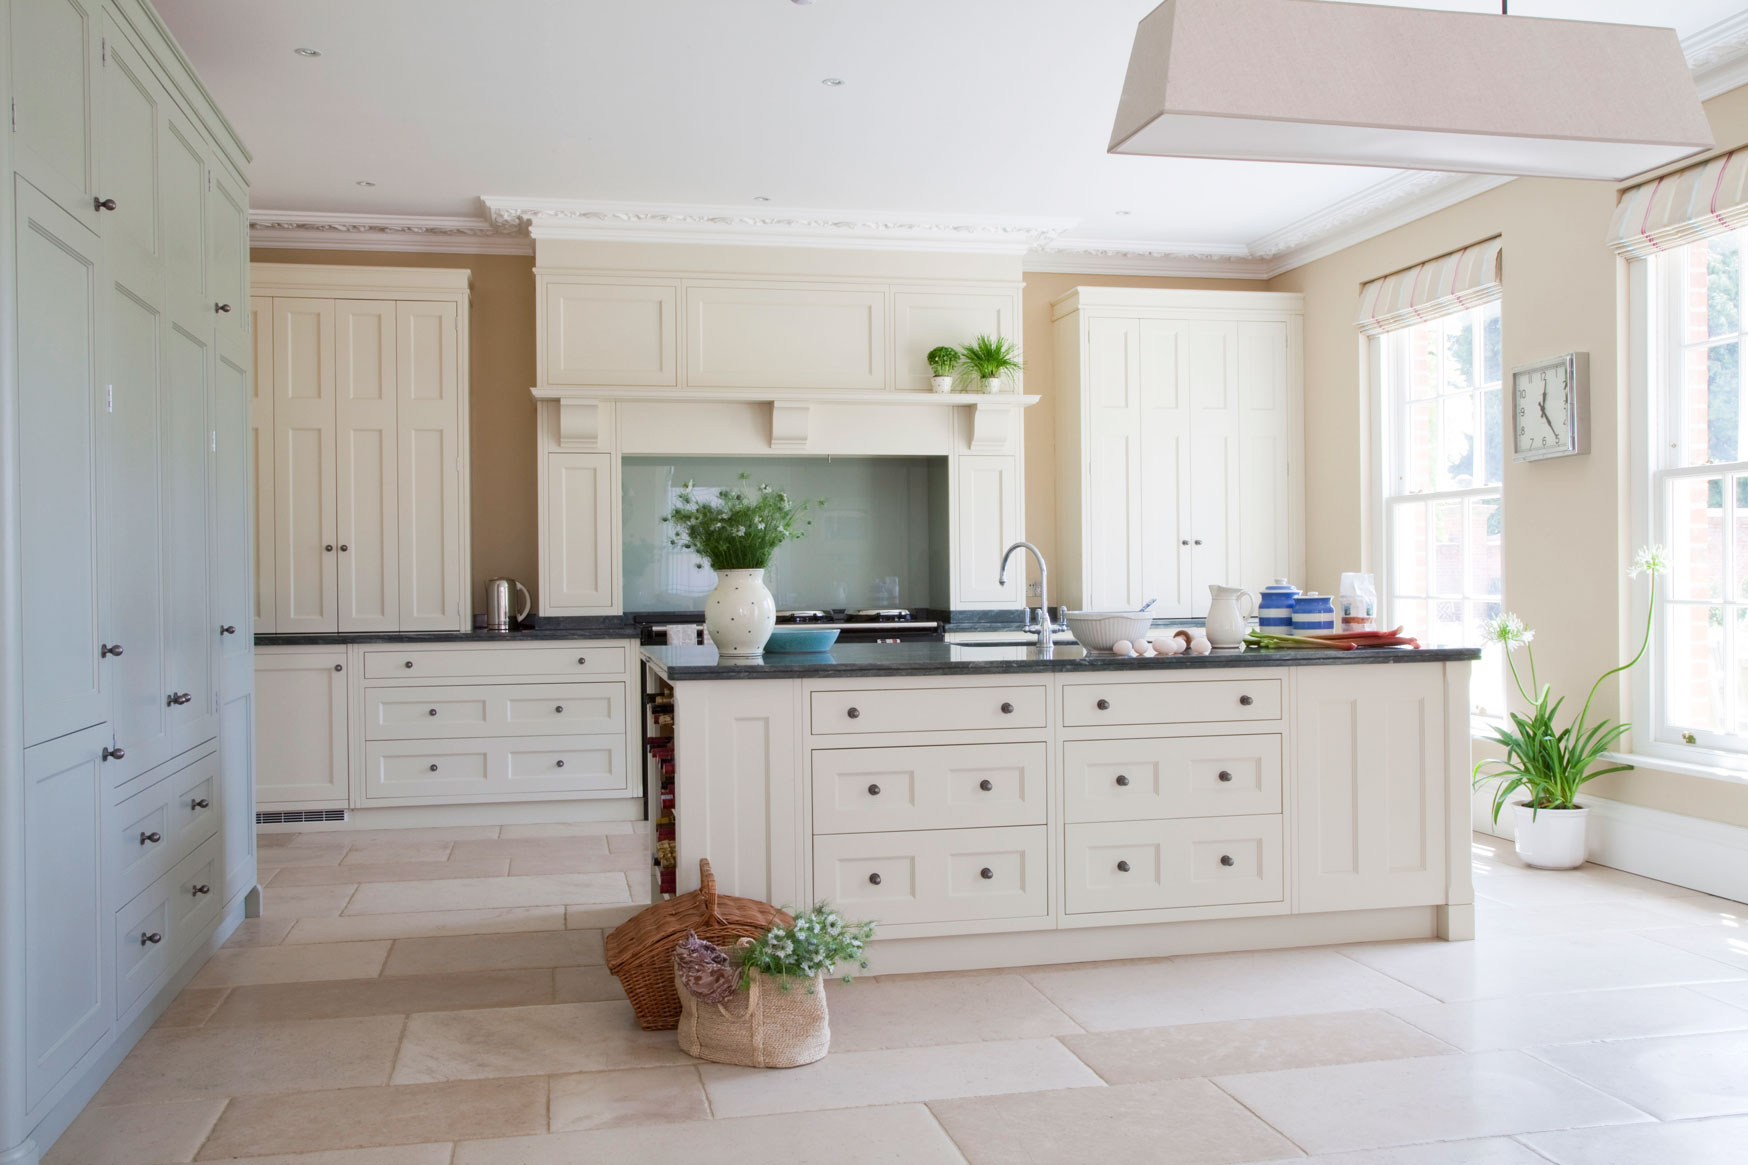 Woodstock Kitchens offers painted wood kitchens